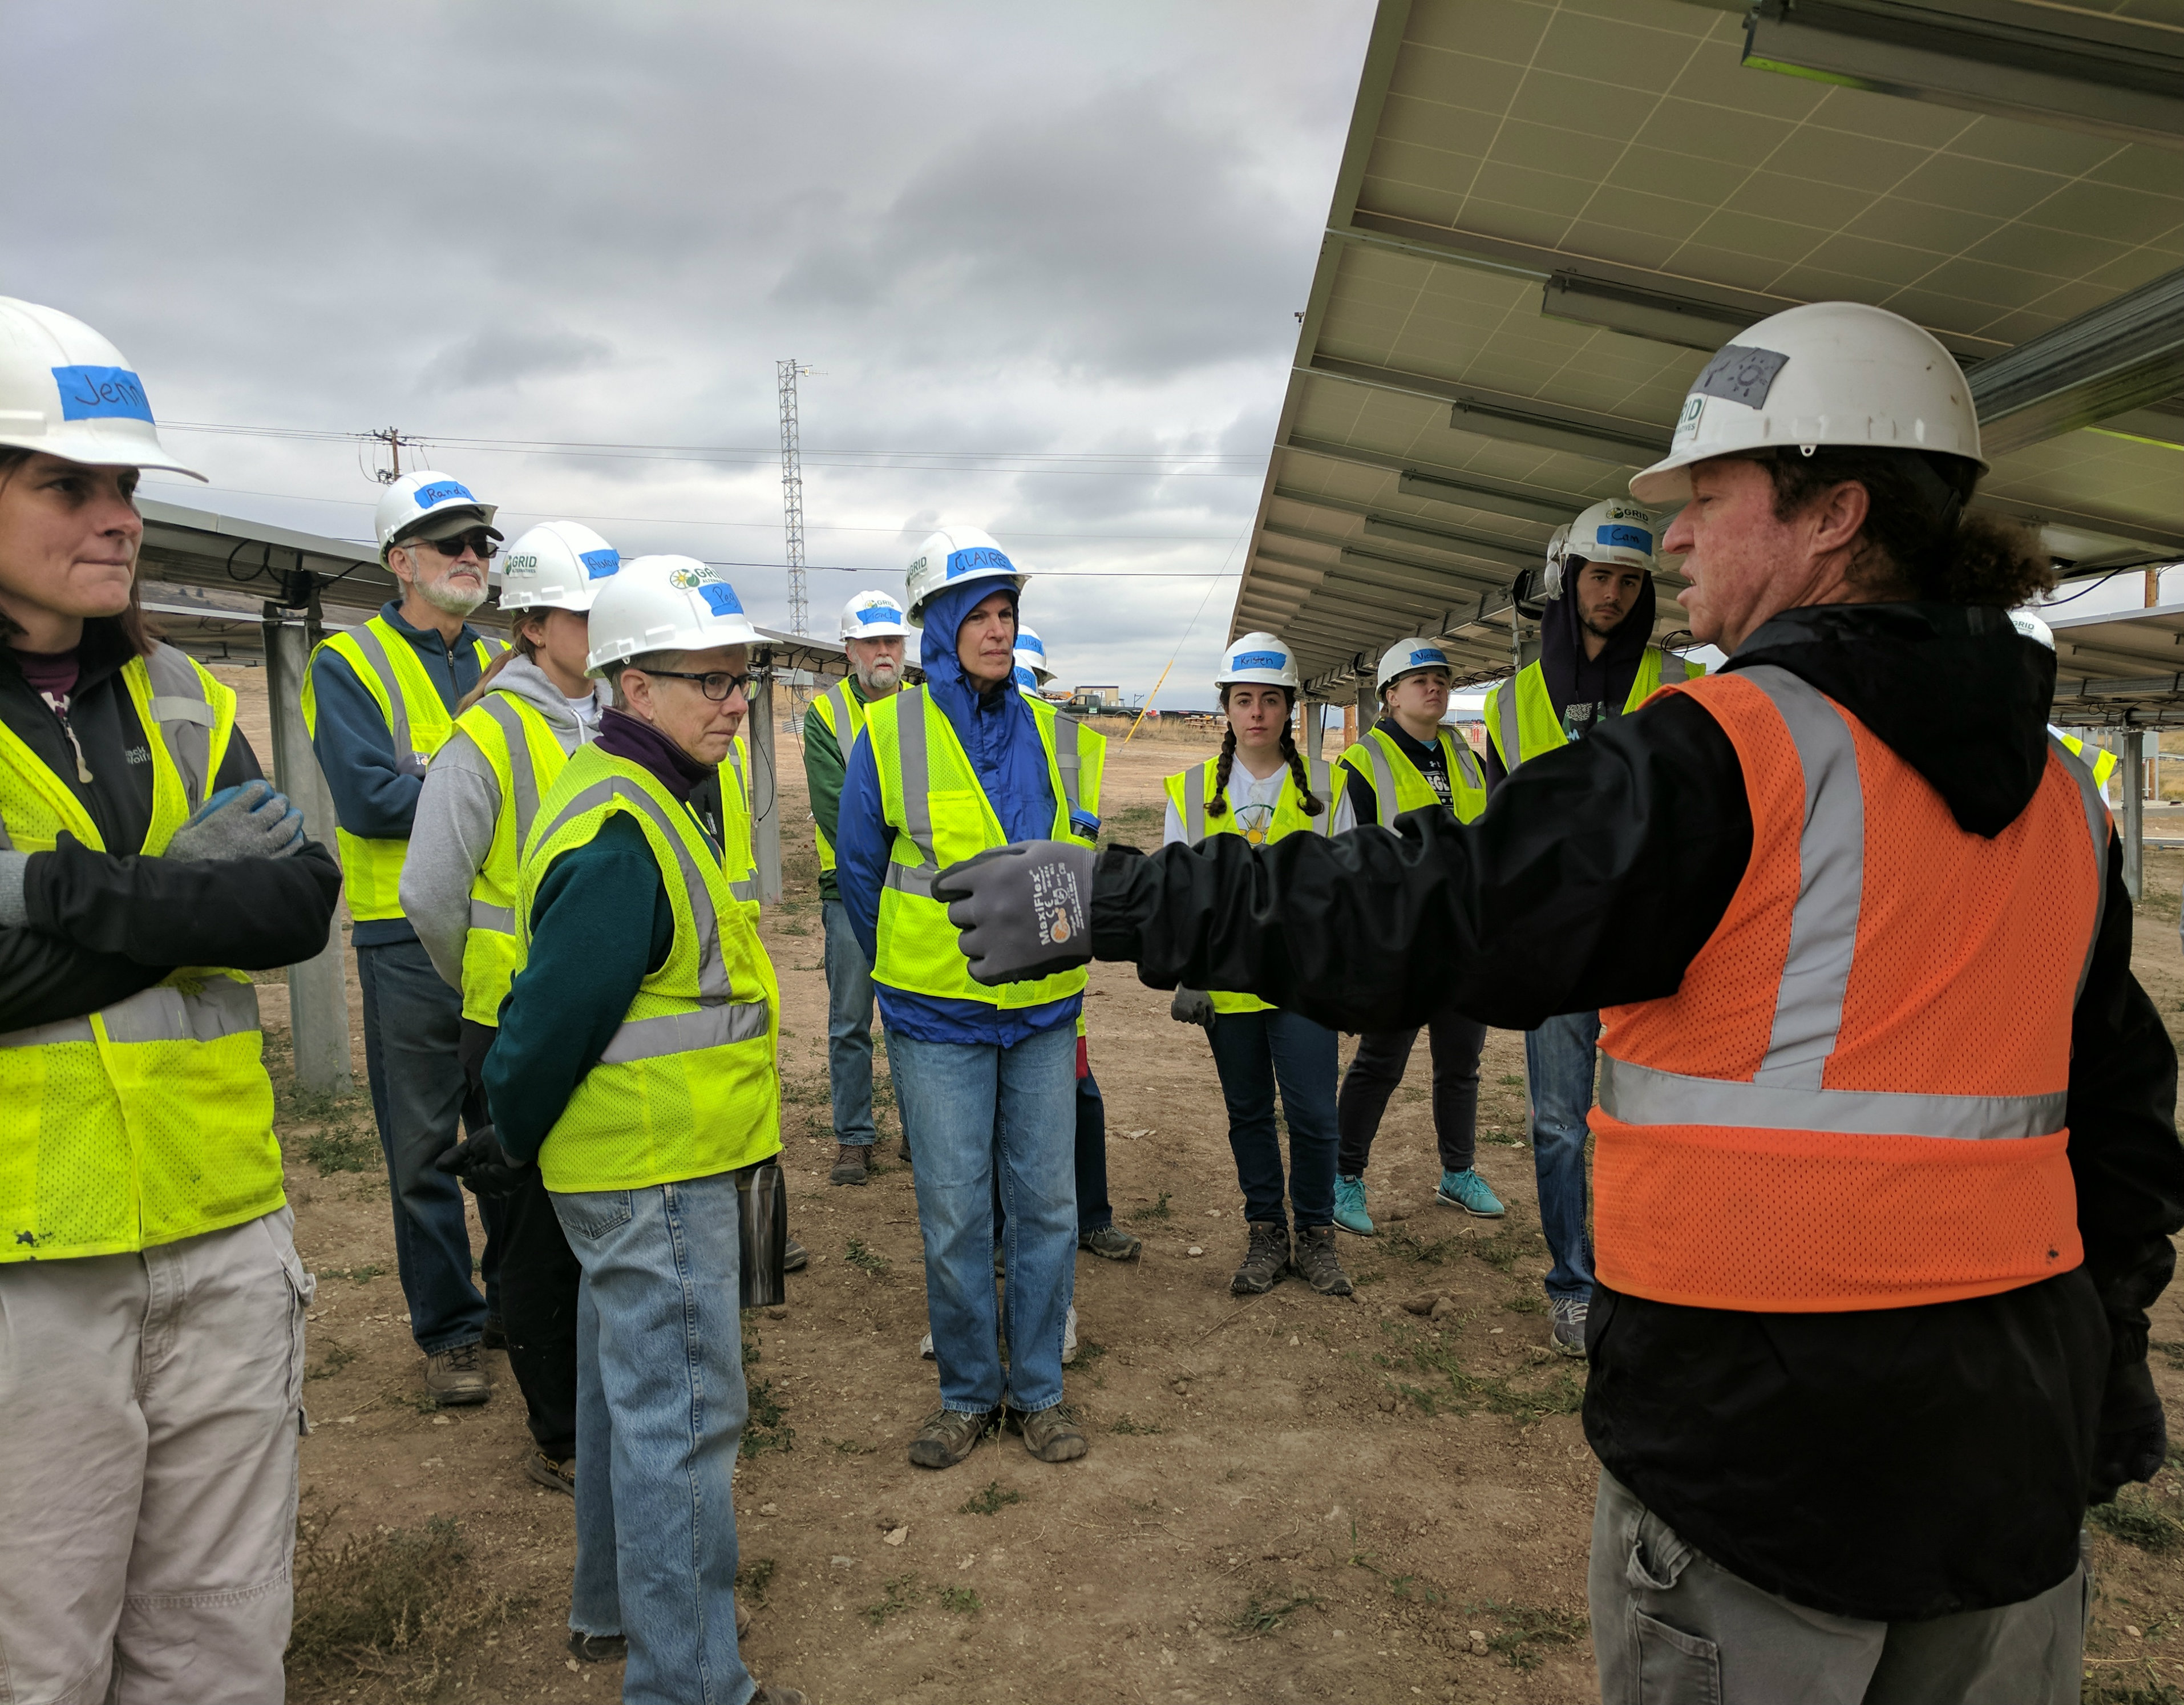 Colorado School of Mines students among the volunteers at a Grid Alternatives build day in Fort Collins